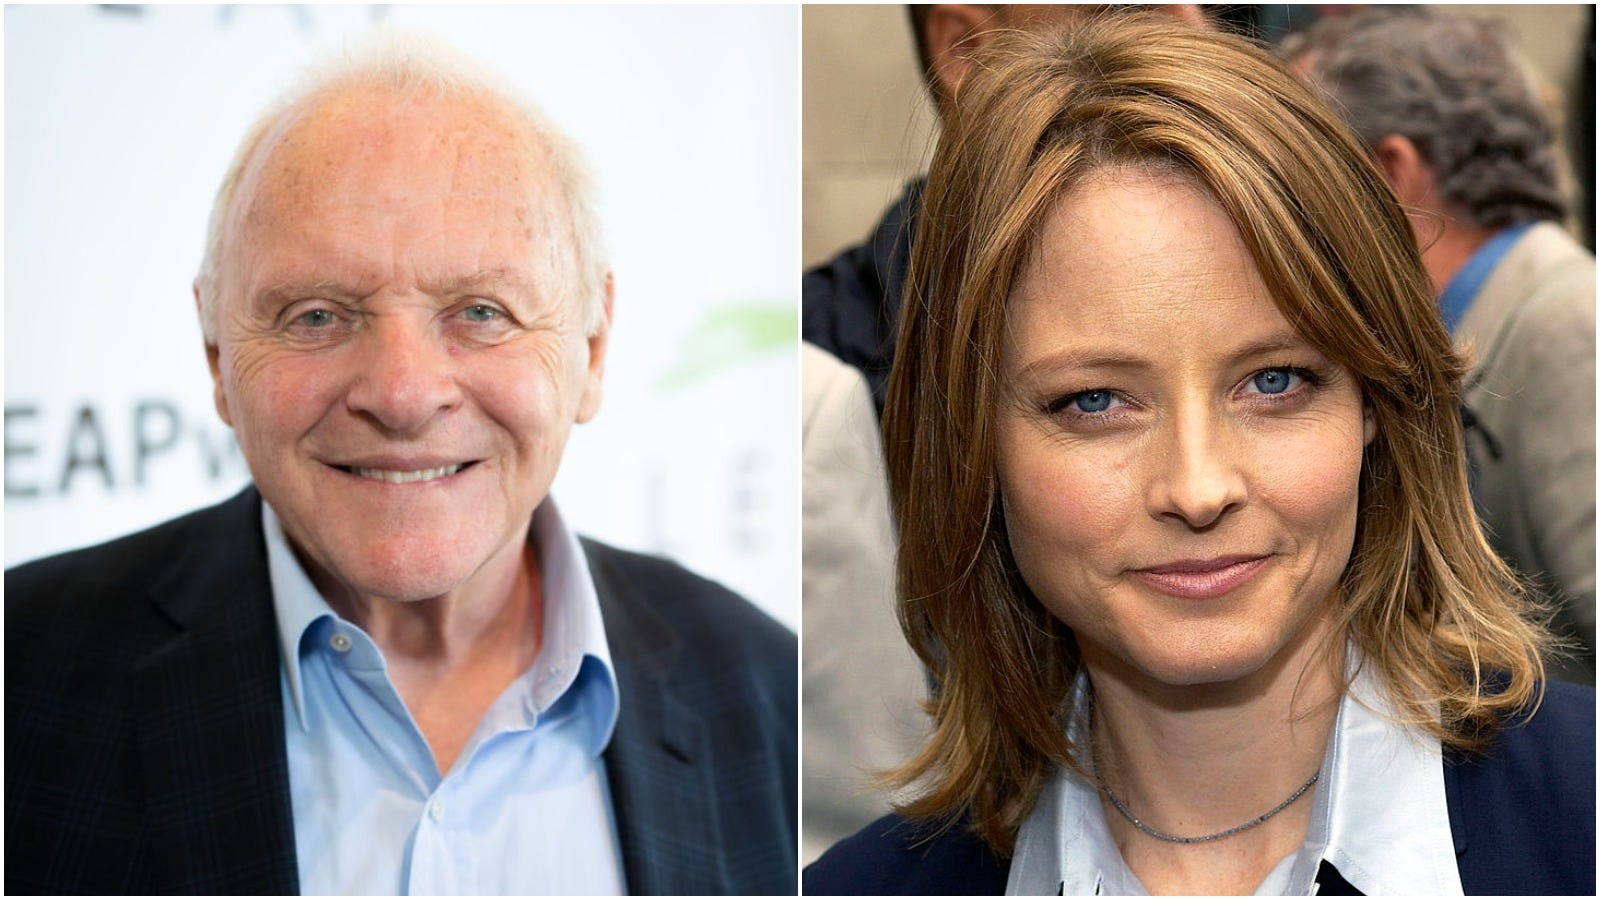 Anthony Hopkins and Jodie Foster reunite virtually for 'Silence of the Lambs' 30th anniversary